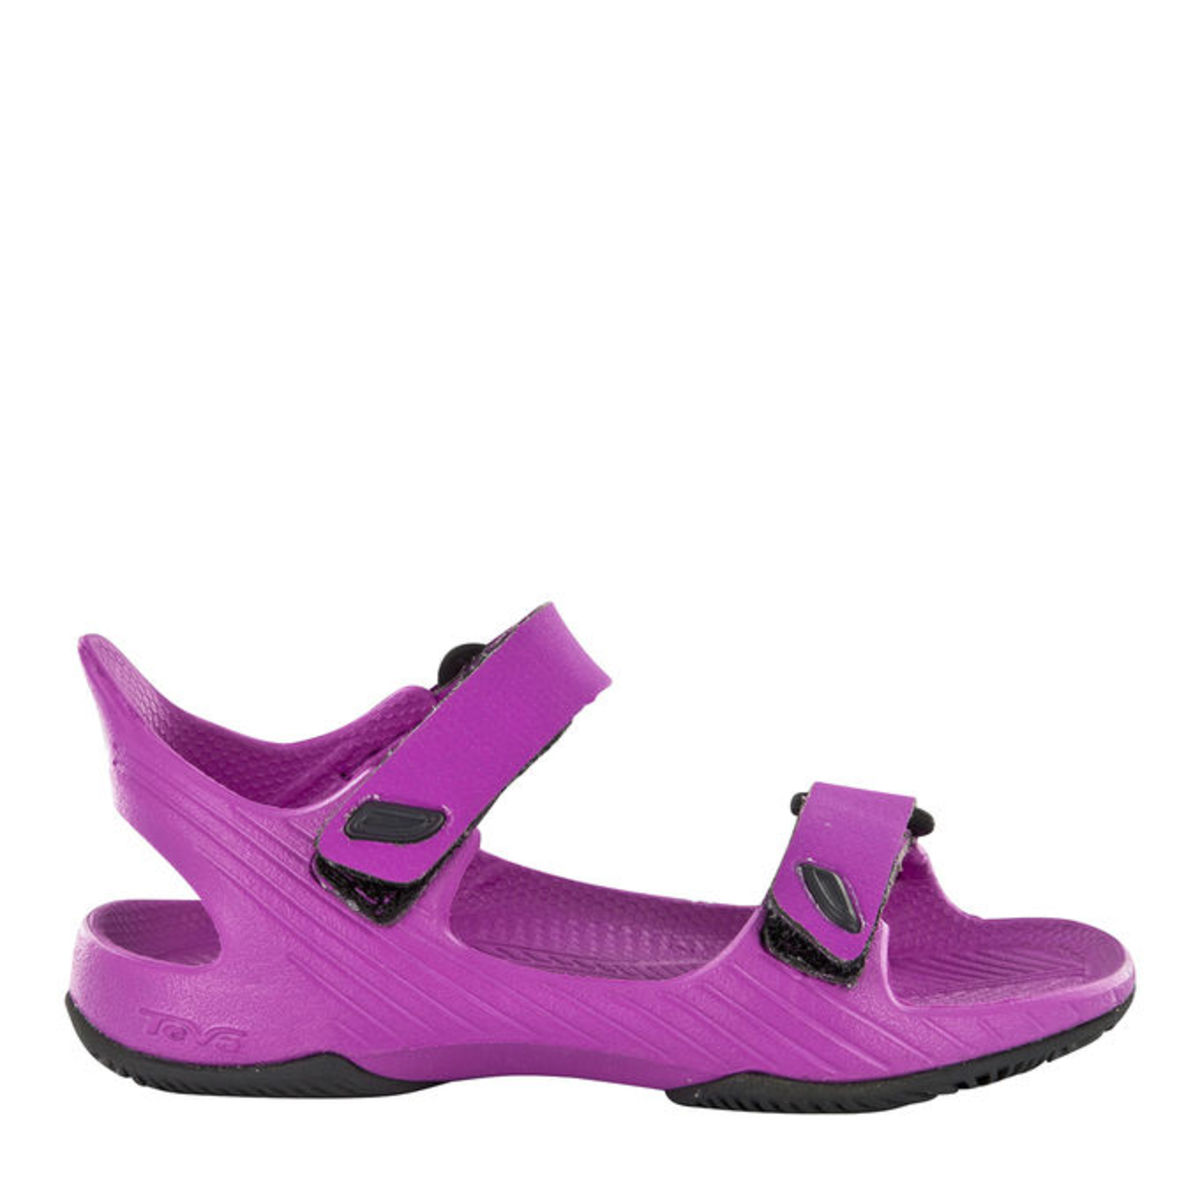 cute water shoes